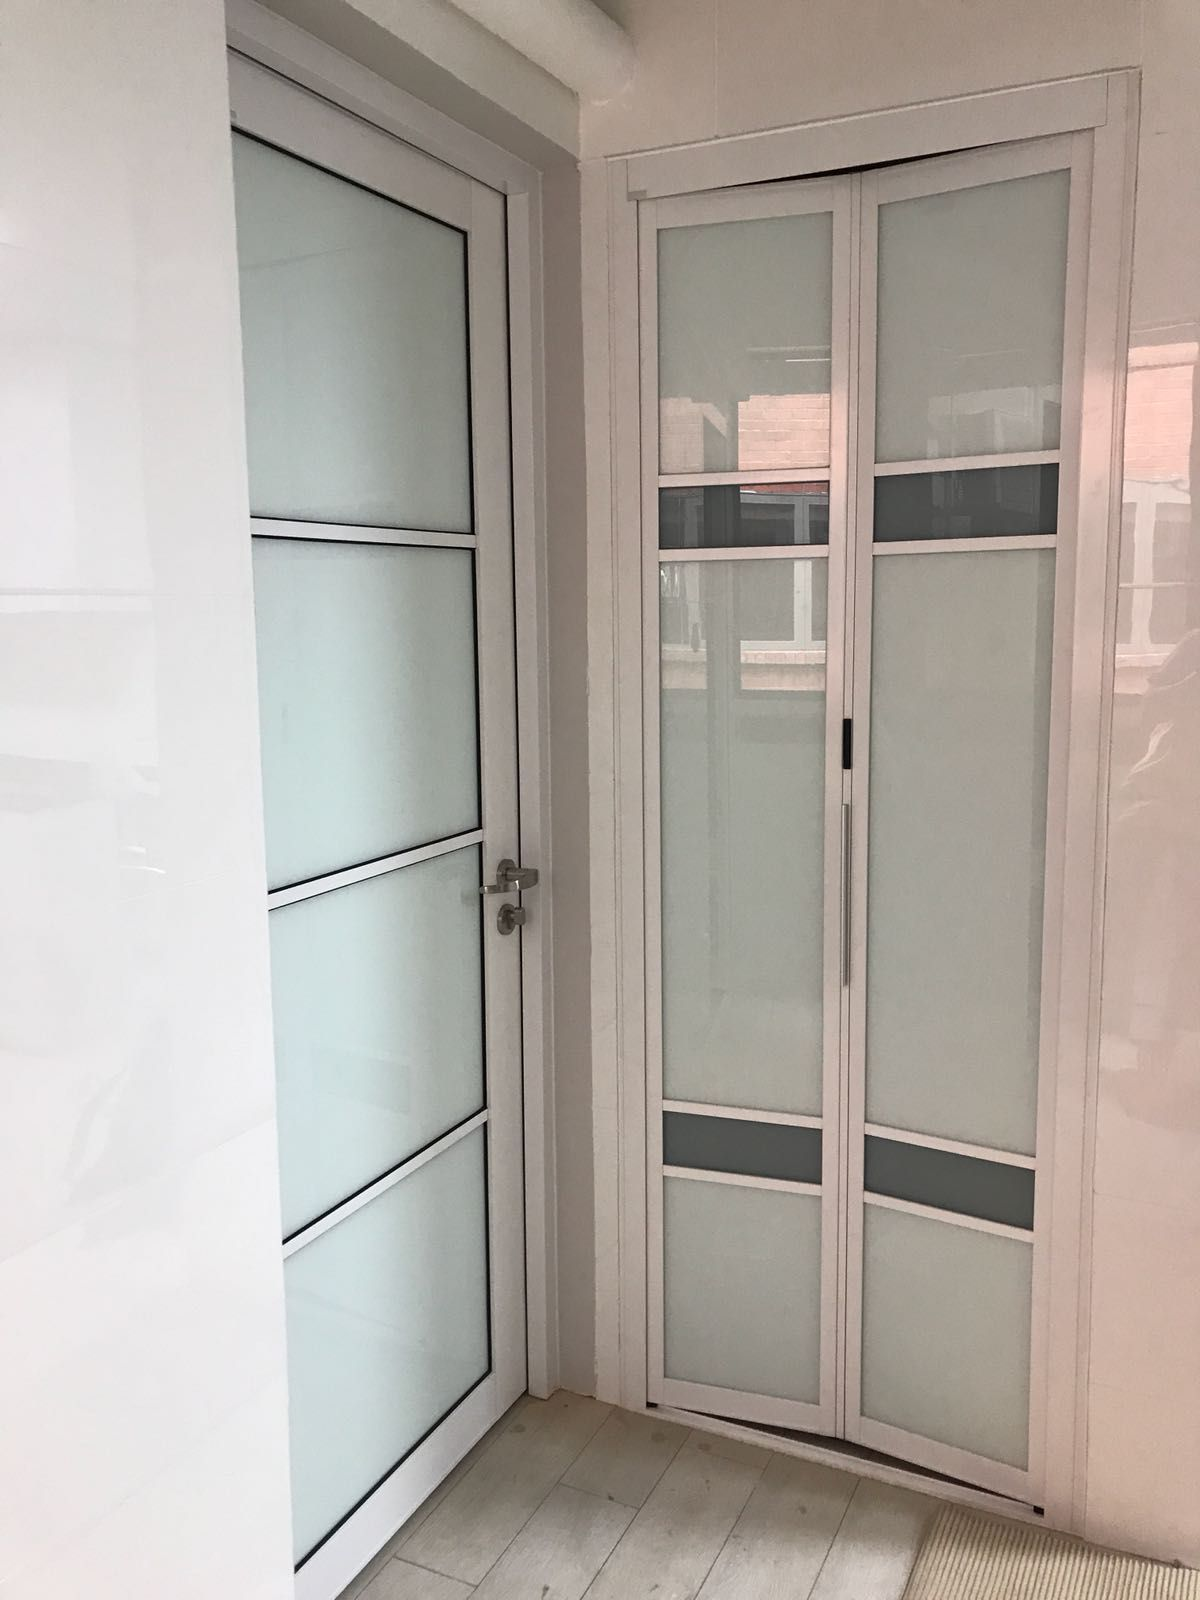 Bathroom And Toilet Bifold Door Glass Bathroom Door Sliding Bathroom Doors Folding Patio Doors